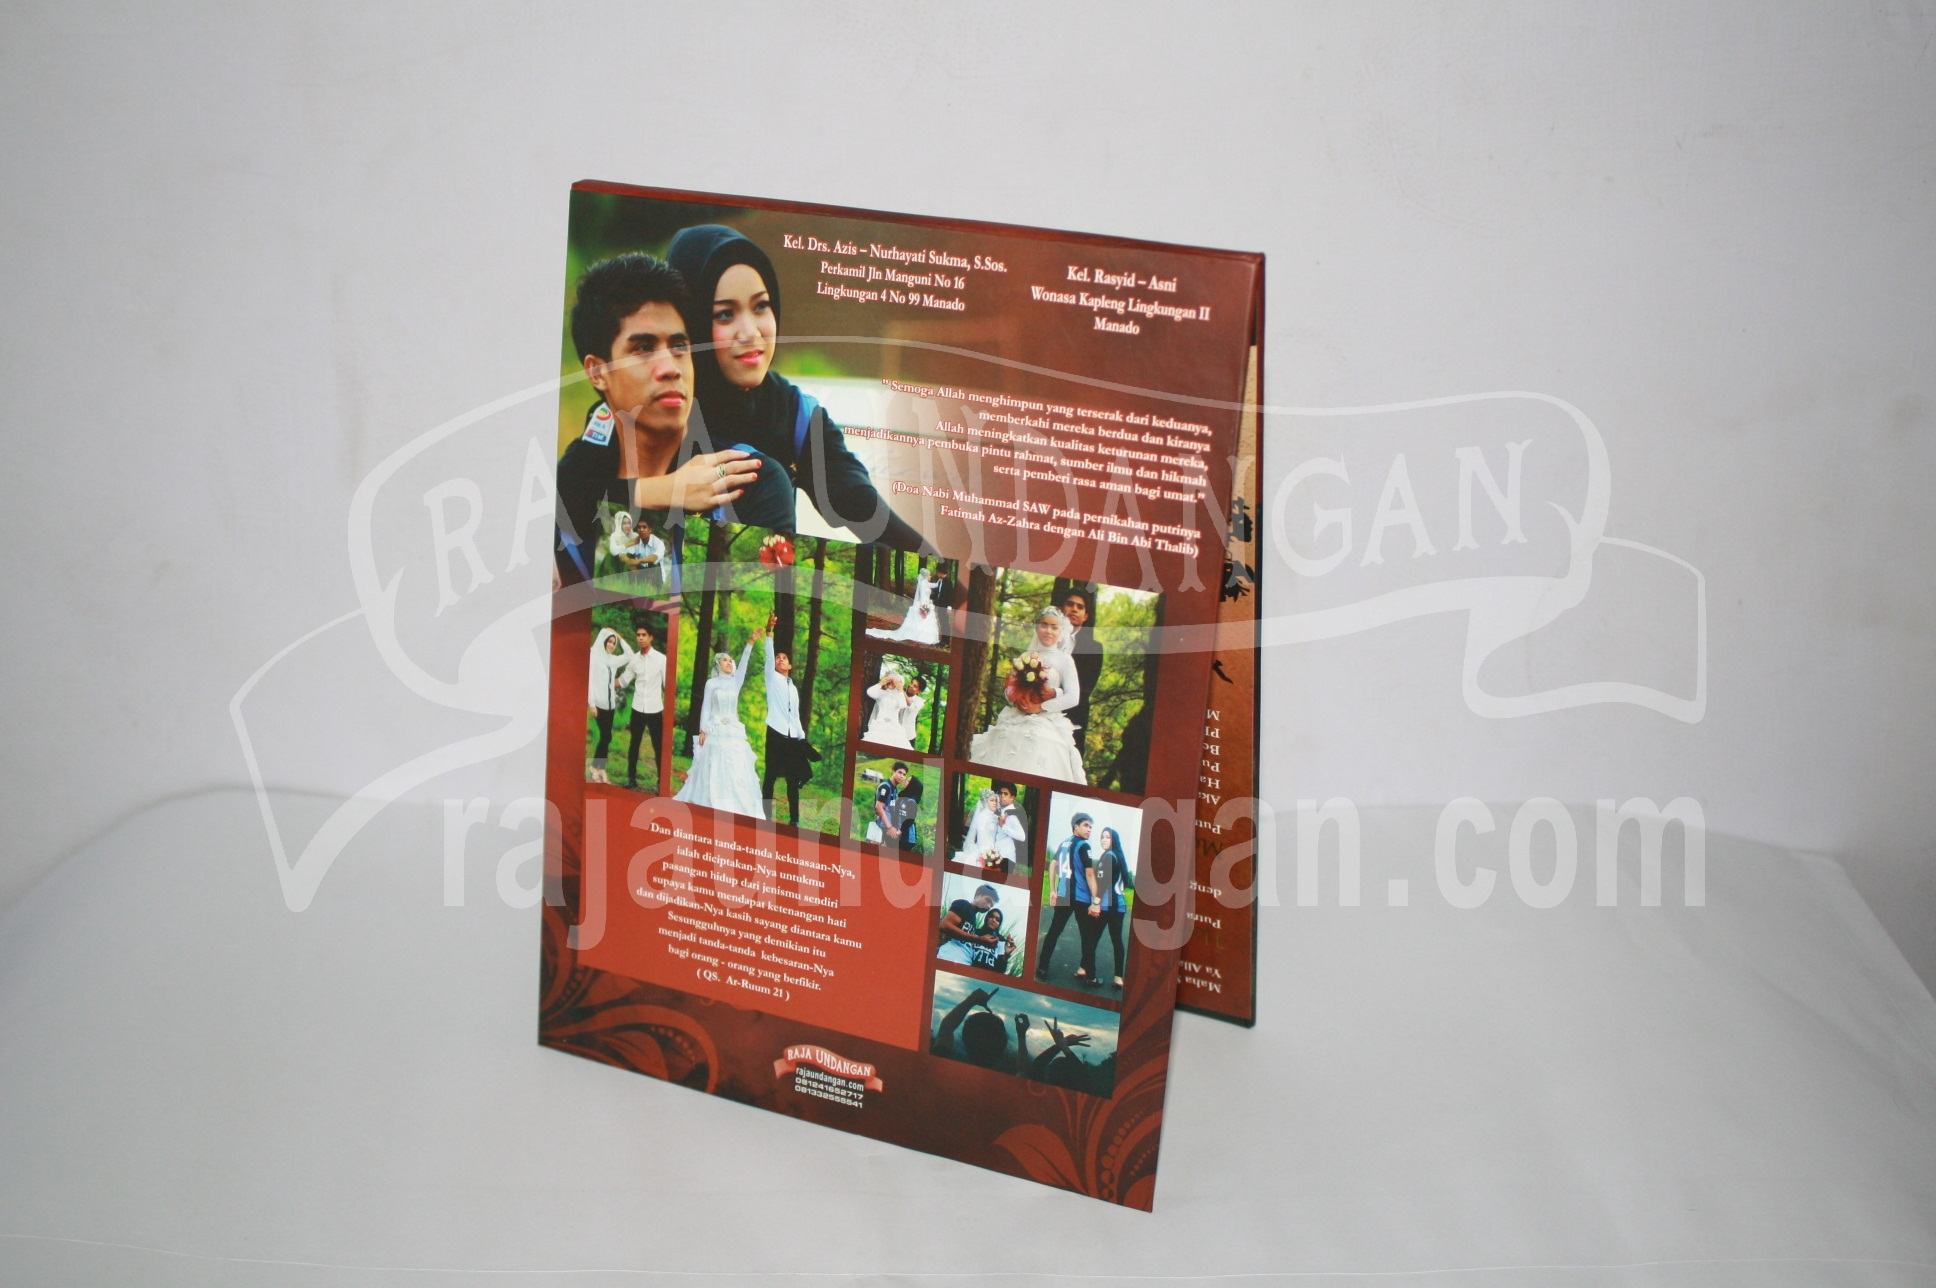 Undangan Pernikahan Hardcover Pop Up Heri dan Mona EDC 43 11 - Percetakan Wedding Invitations Online di Klampisngasem